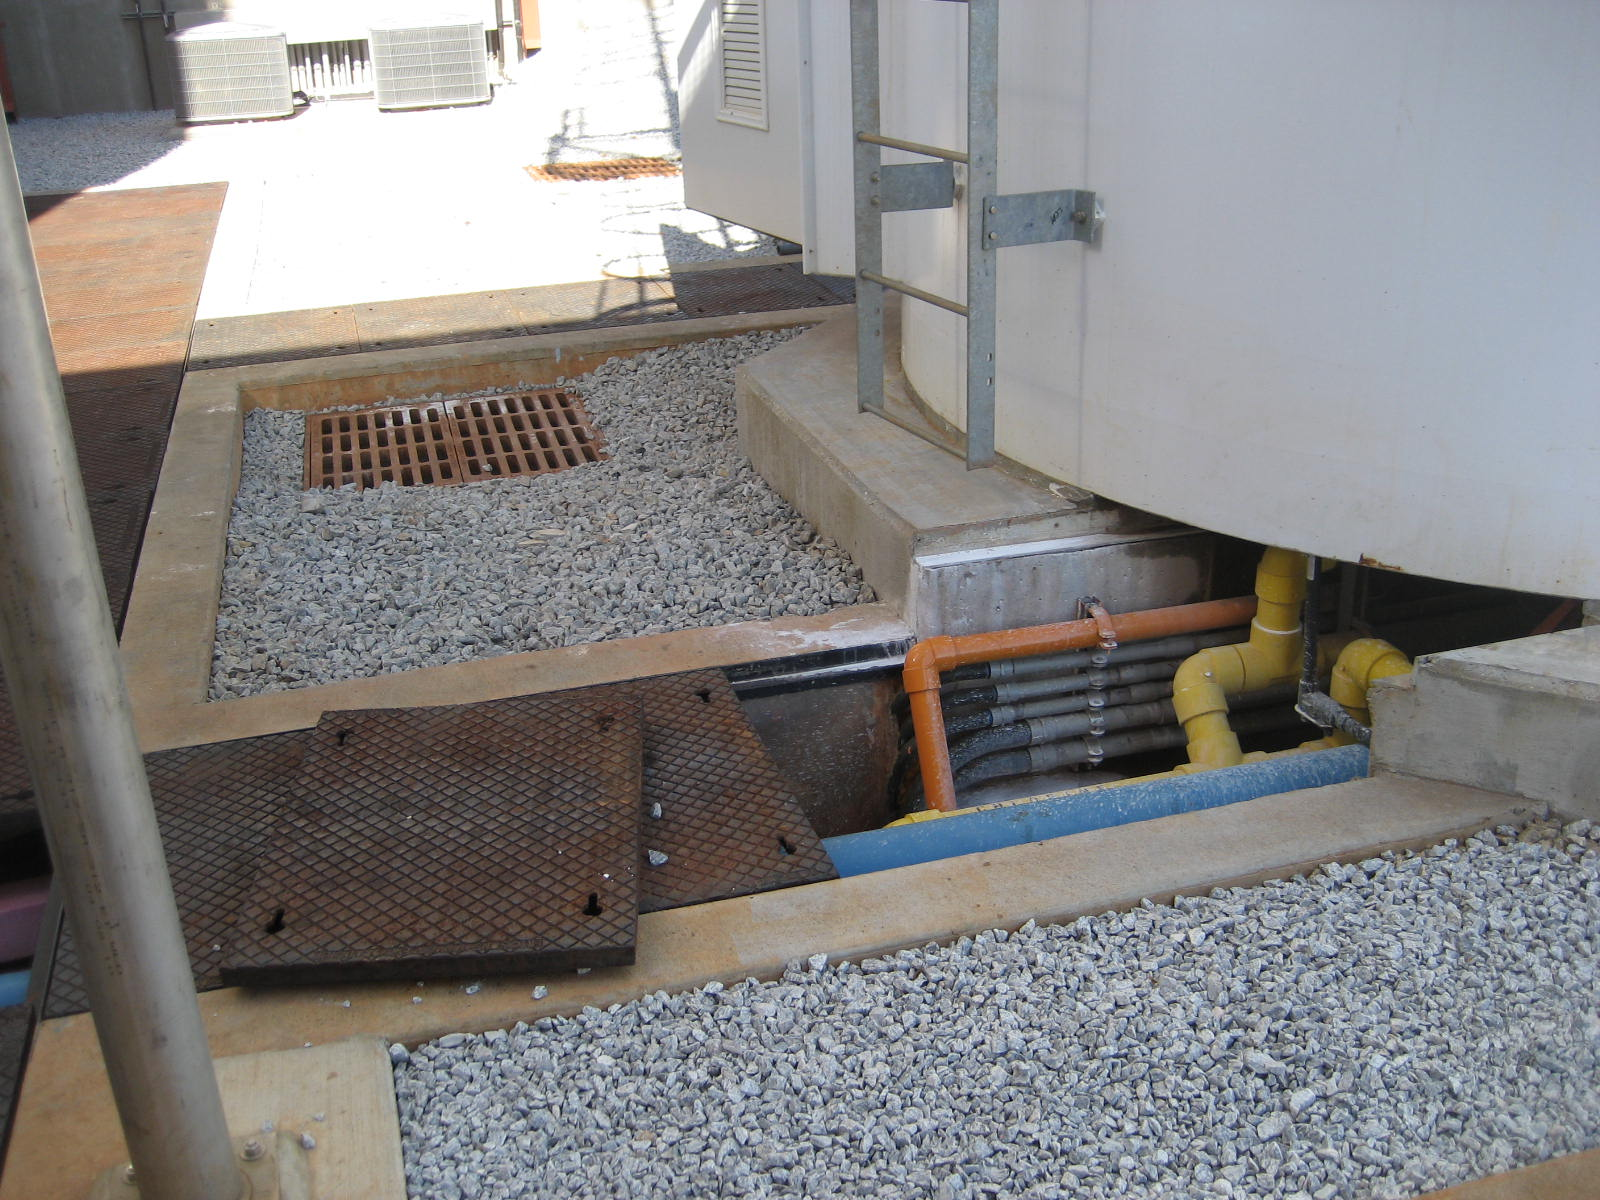 Utility trench for pipes